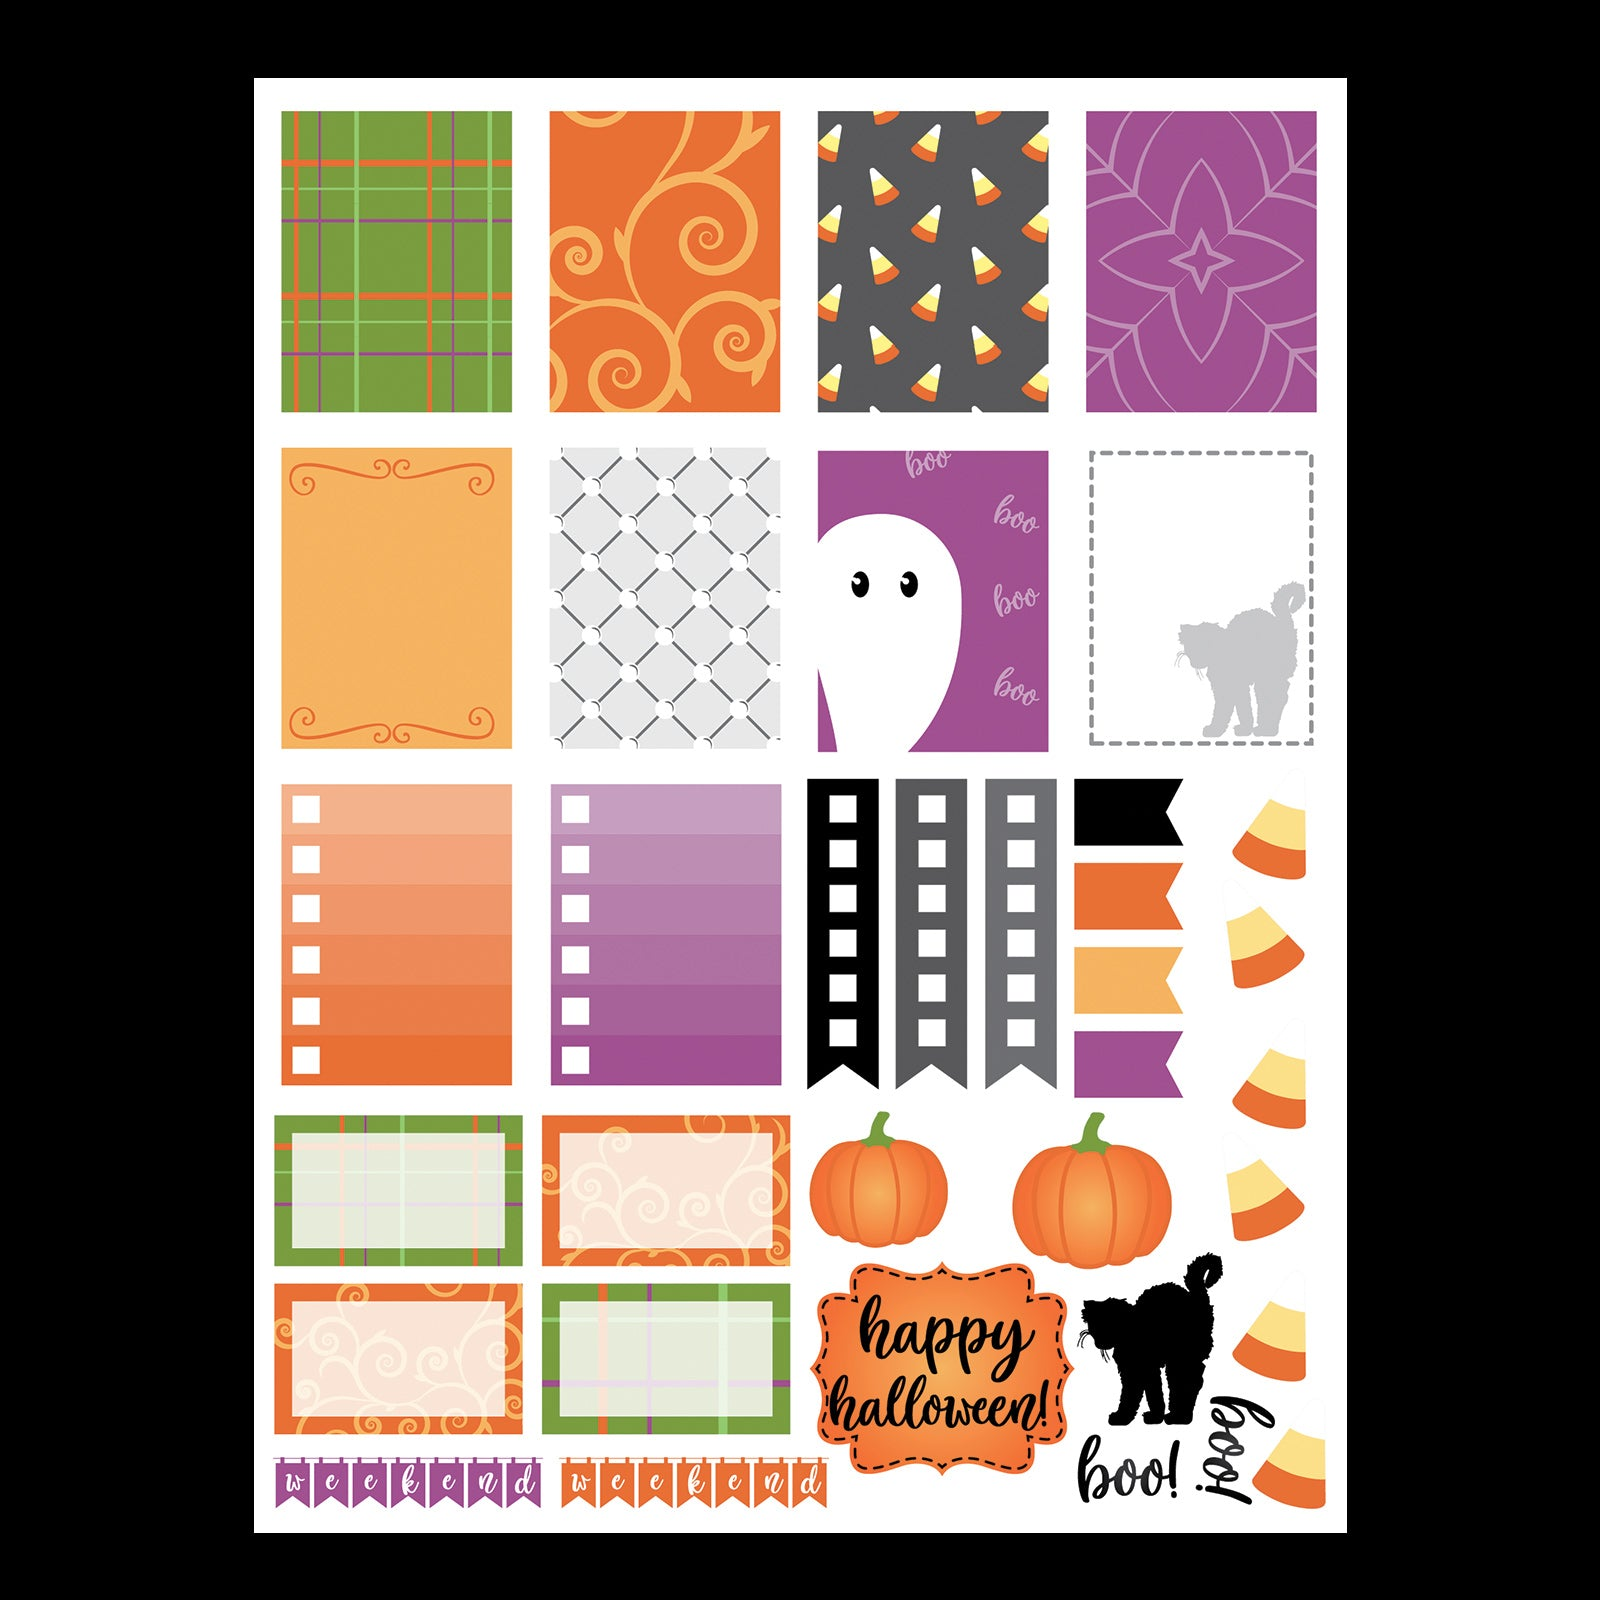 Monthly Freebie - October Planner Stickers in png and pdf formats to get you in the Halloween mood - Free for Personal Use